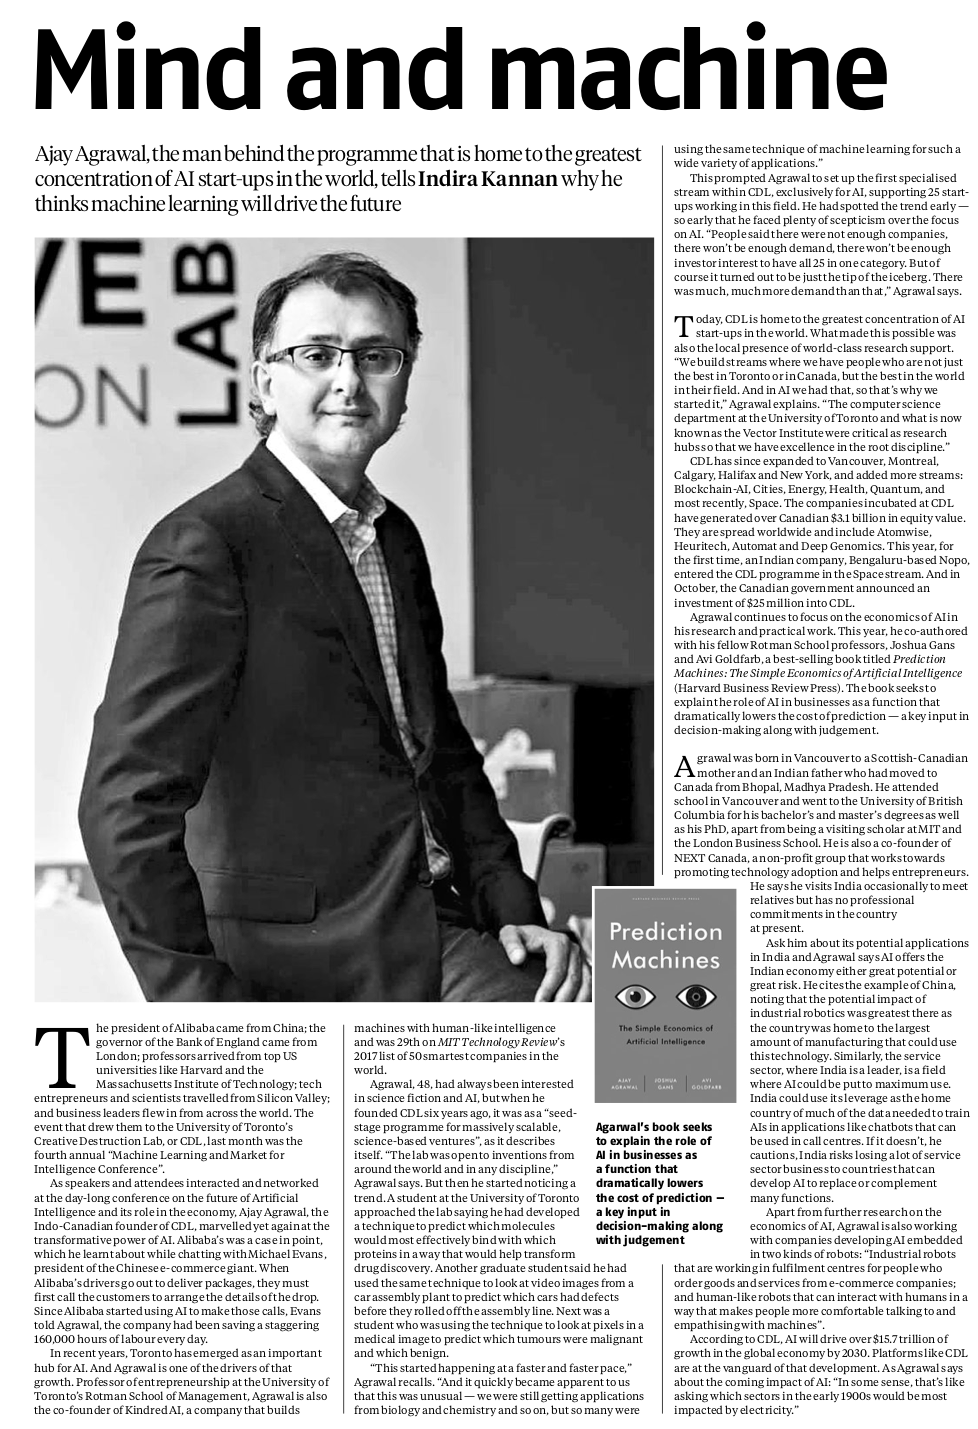 Business Standard (India) Interview featuring Professor Agrawal